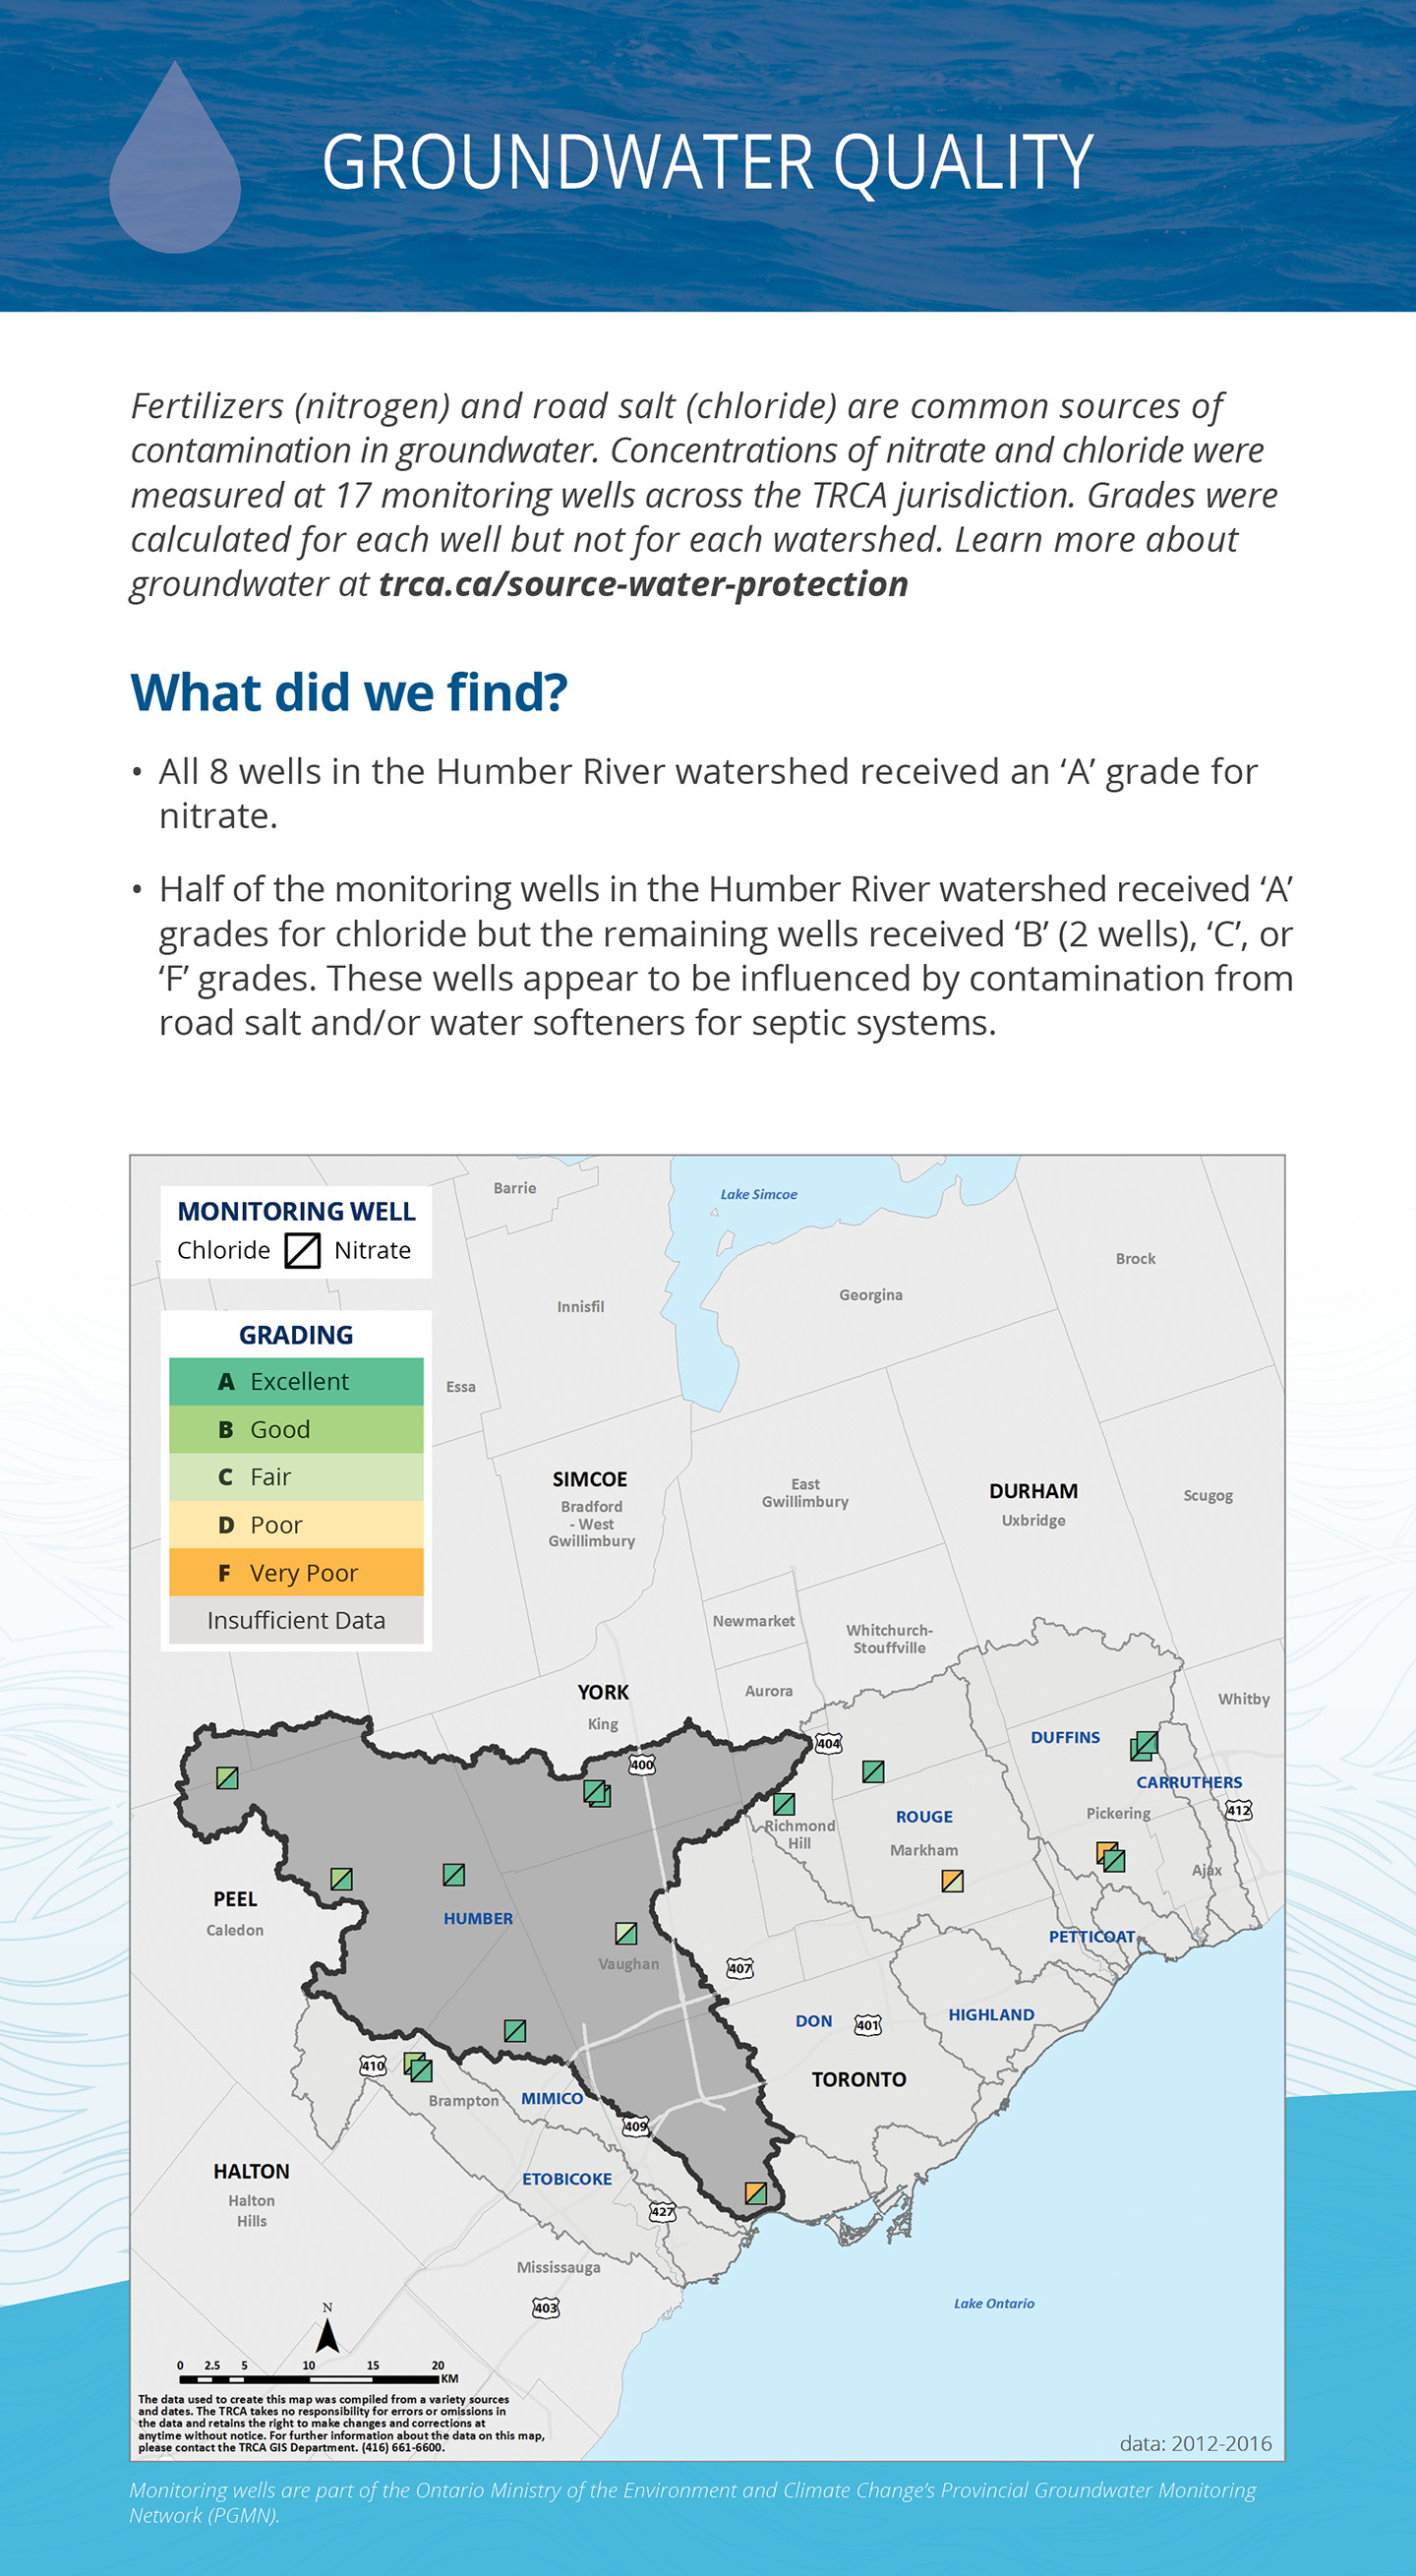 groundwater quality panel of Humber River watershed report card